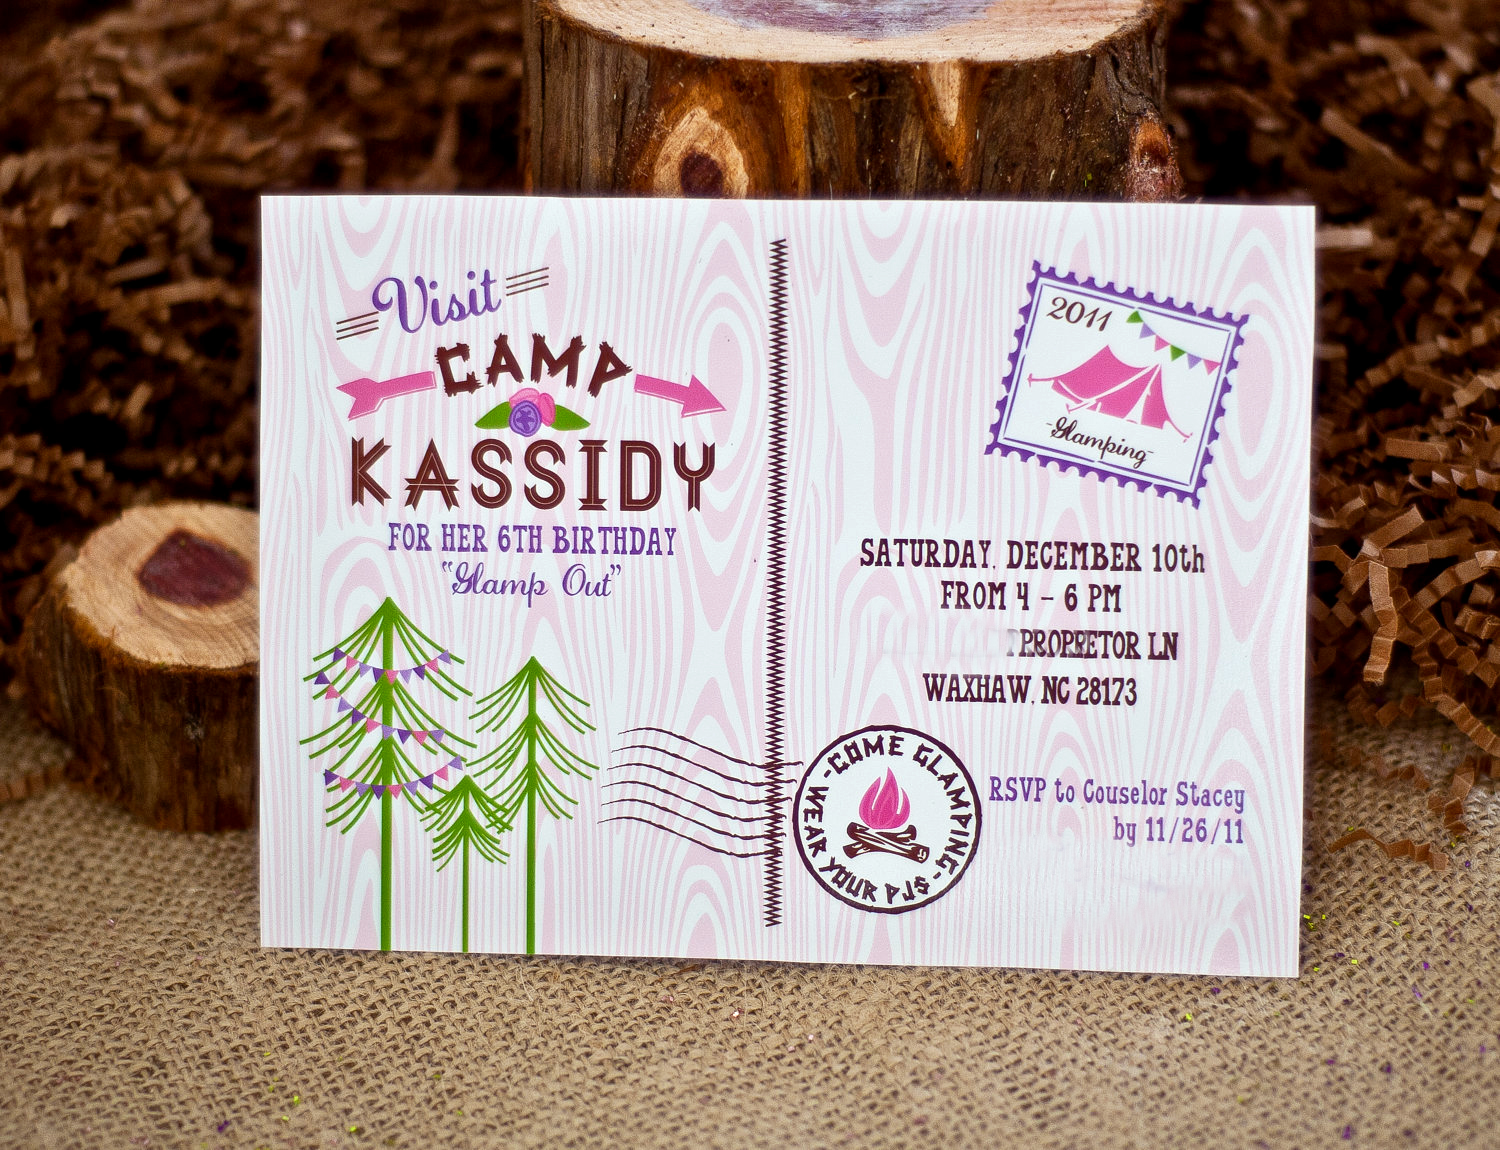 17 Best Ideas About Camping Birthday Invitations On Pinterest ...